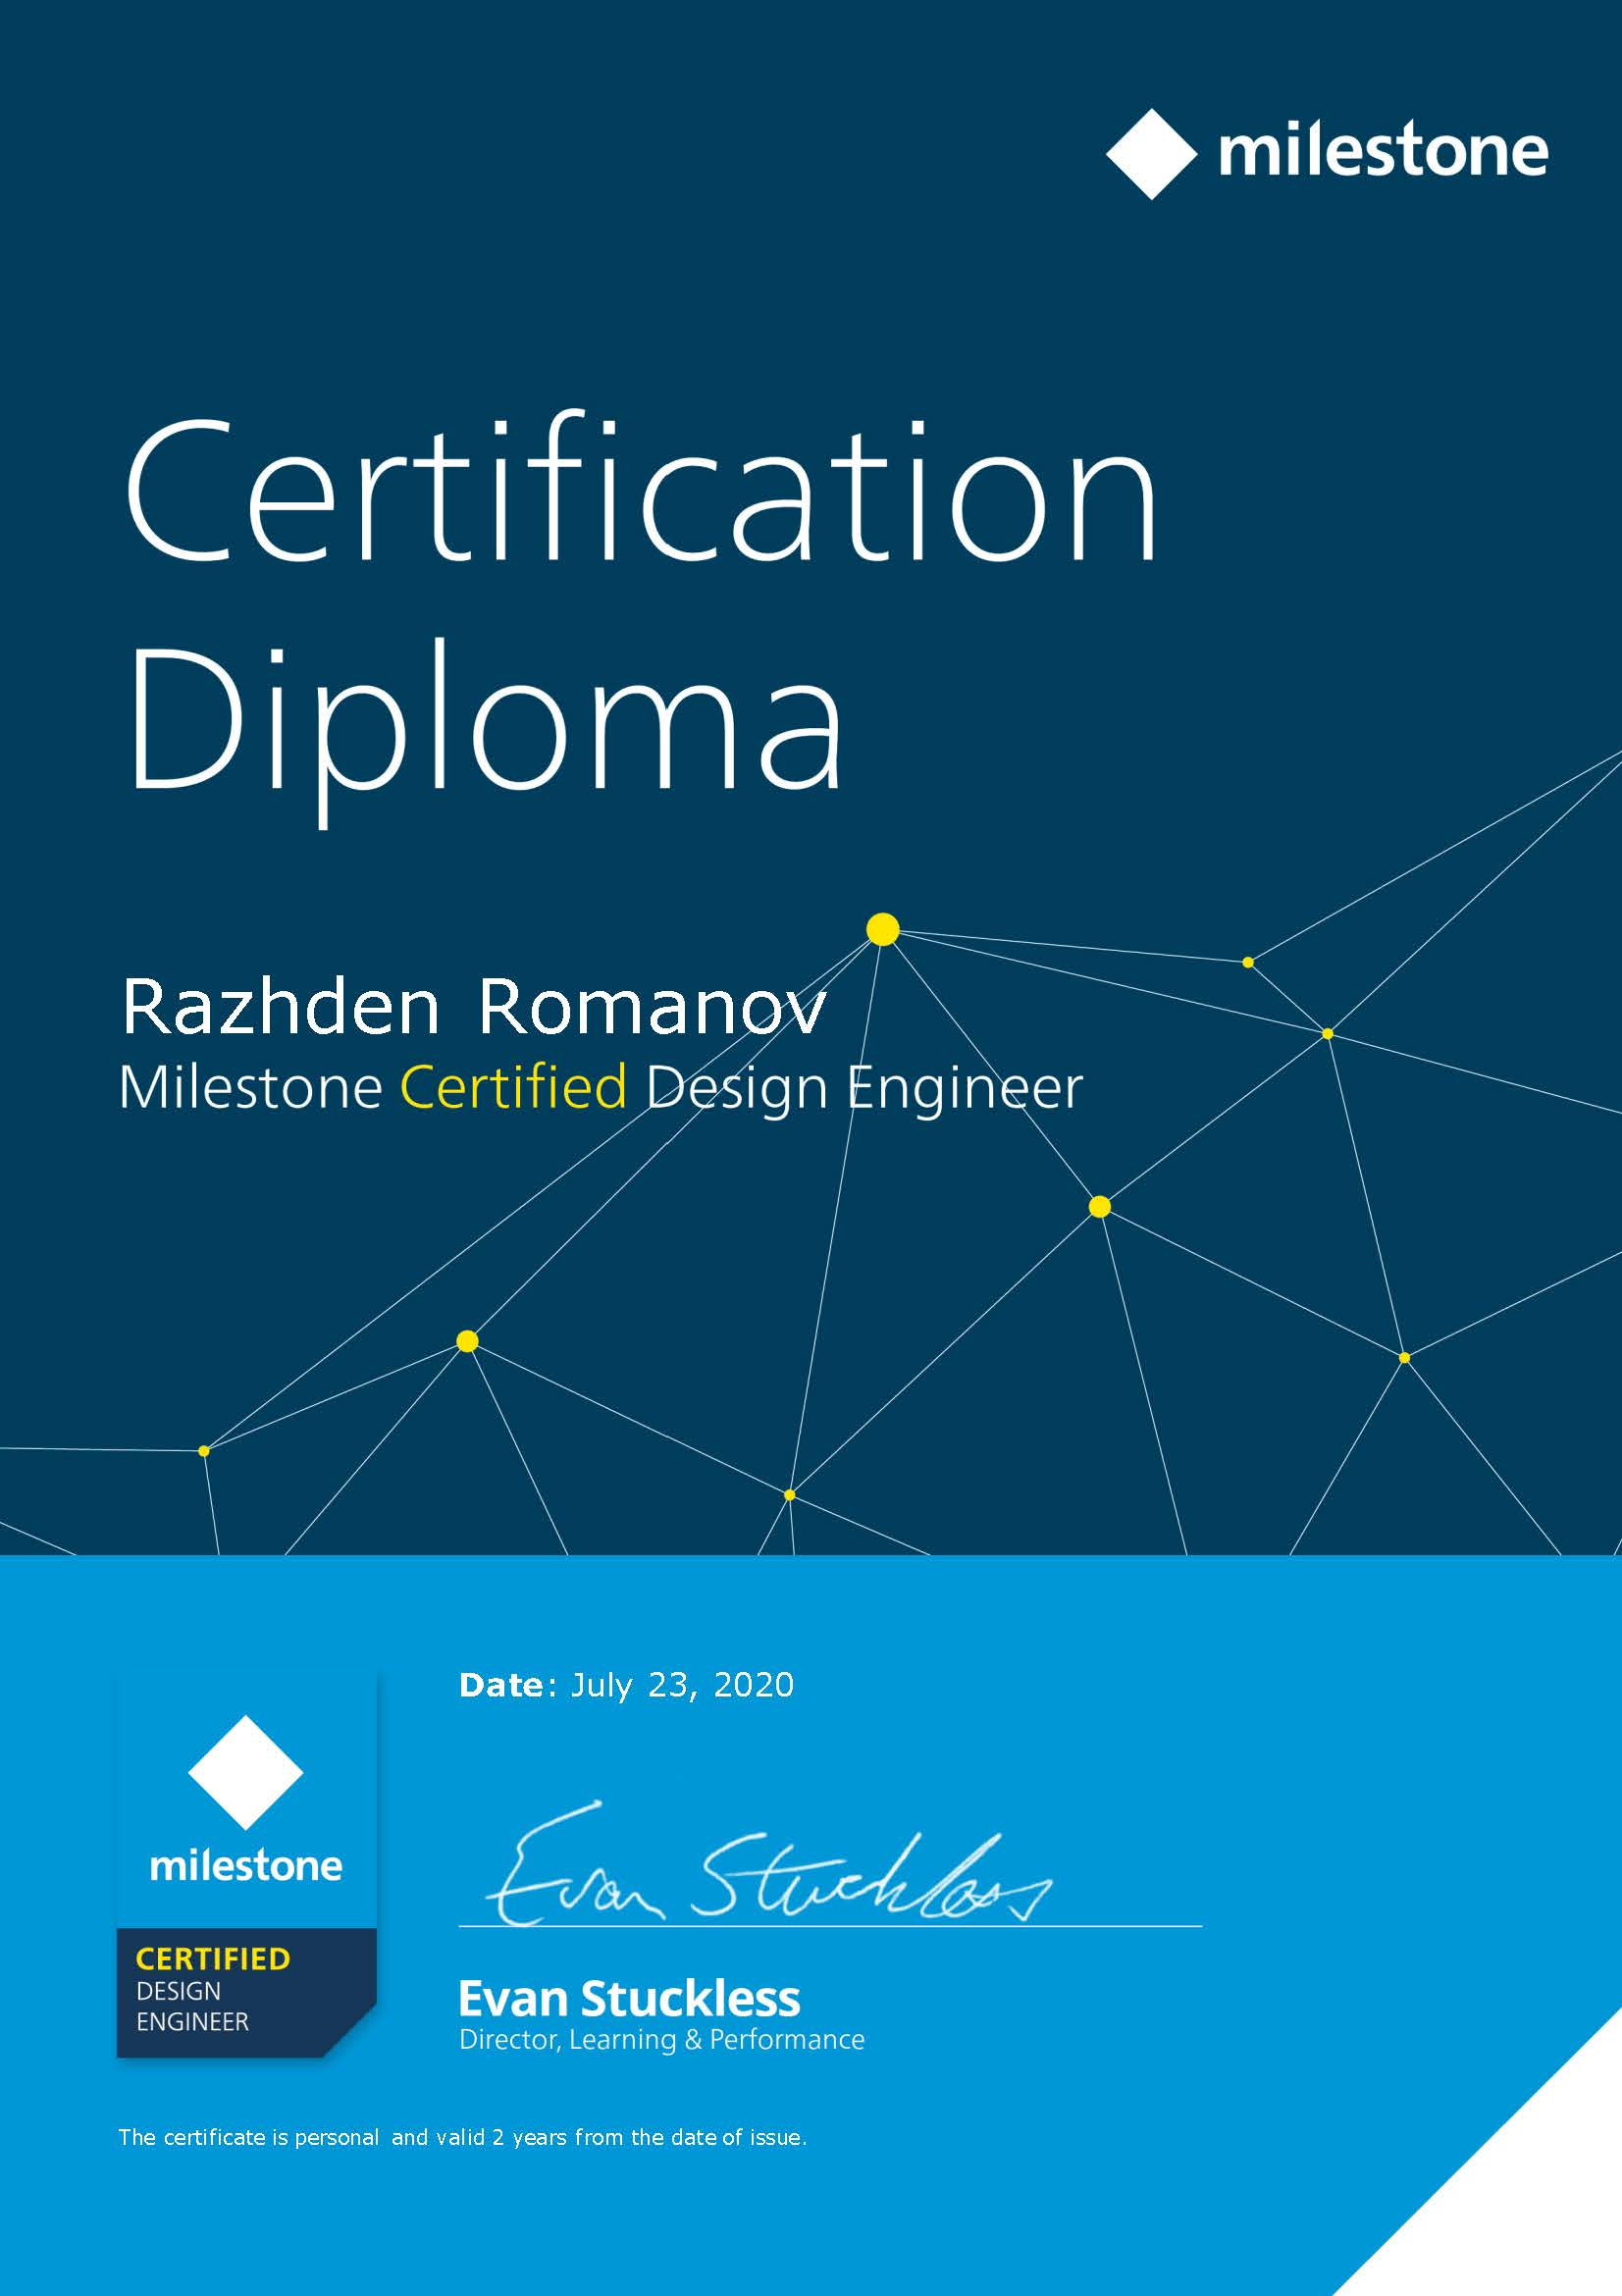 Milestone Certified Design Engineer